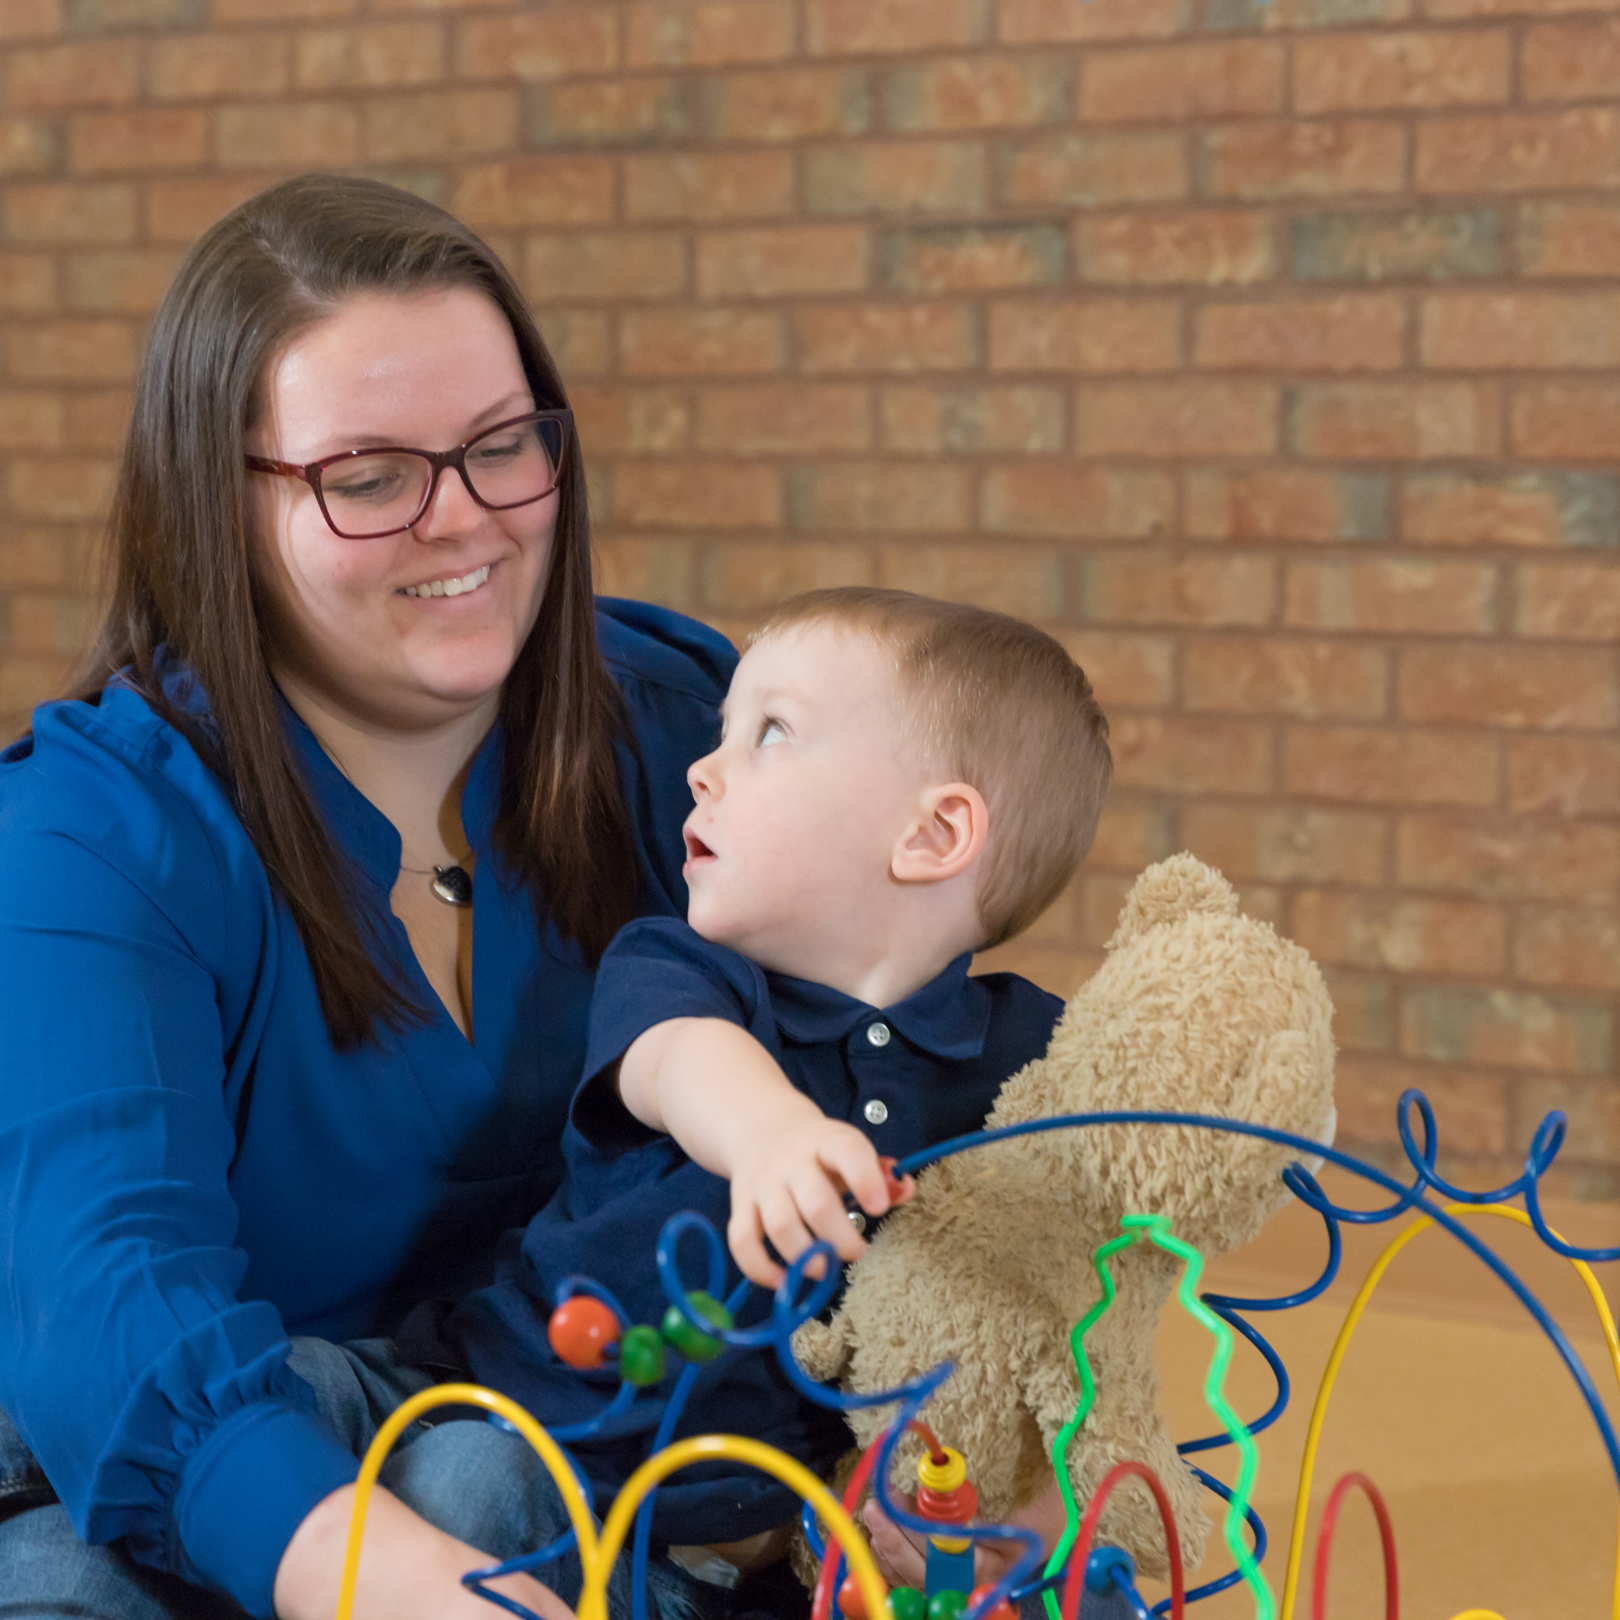 Mother holding son in her lap as he plays with the toys in front of them.